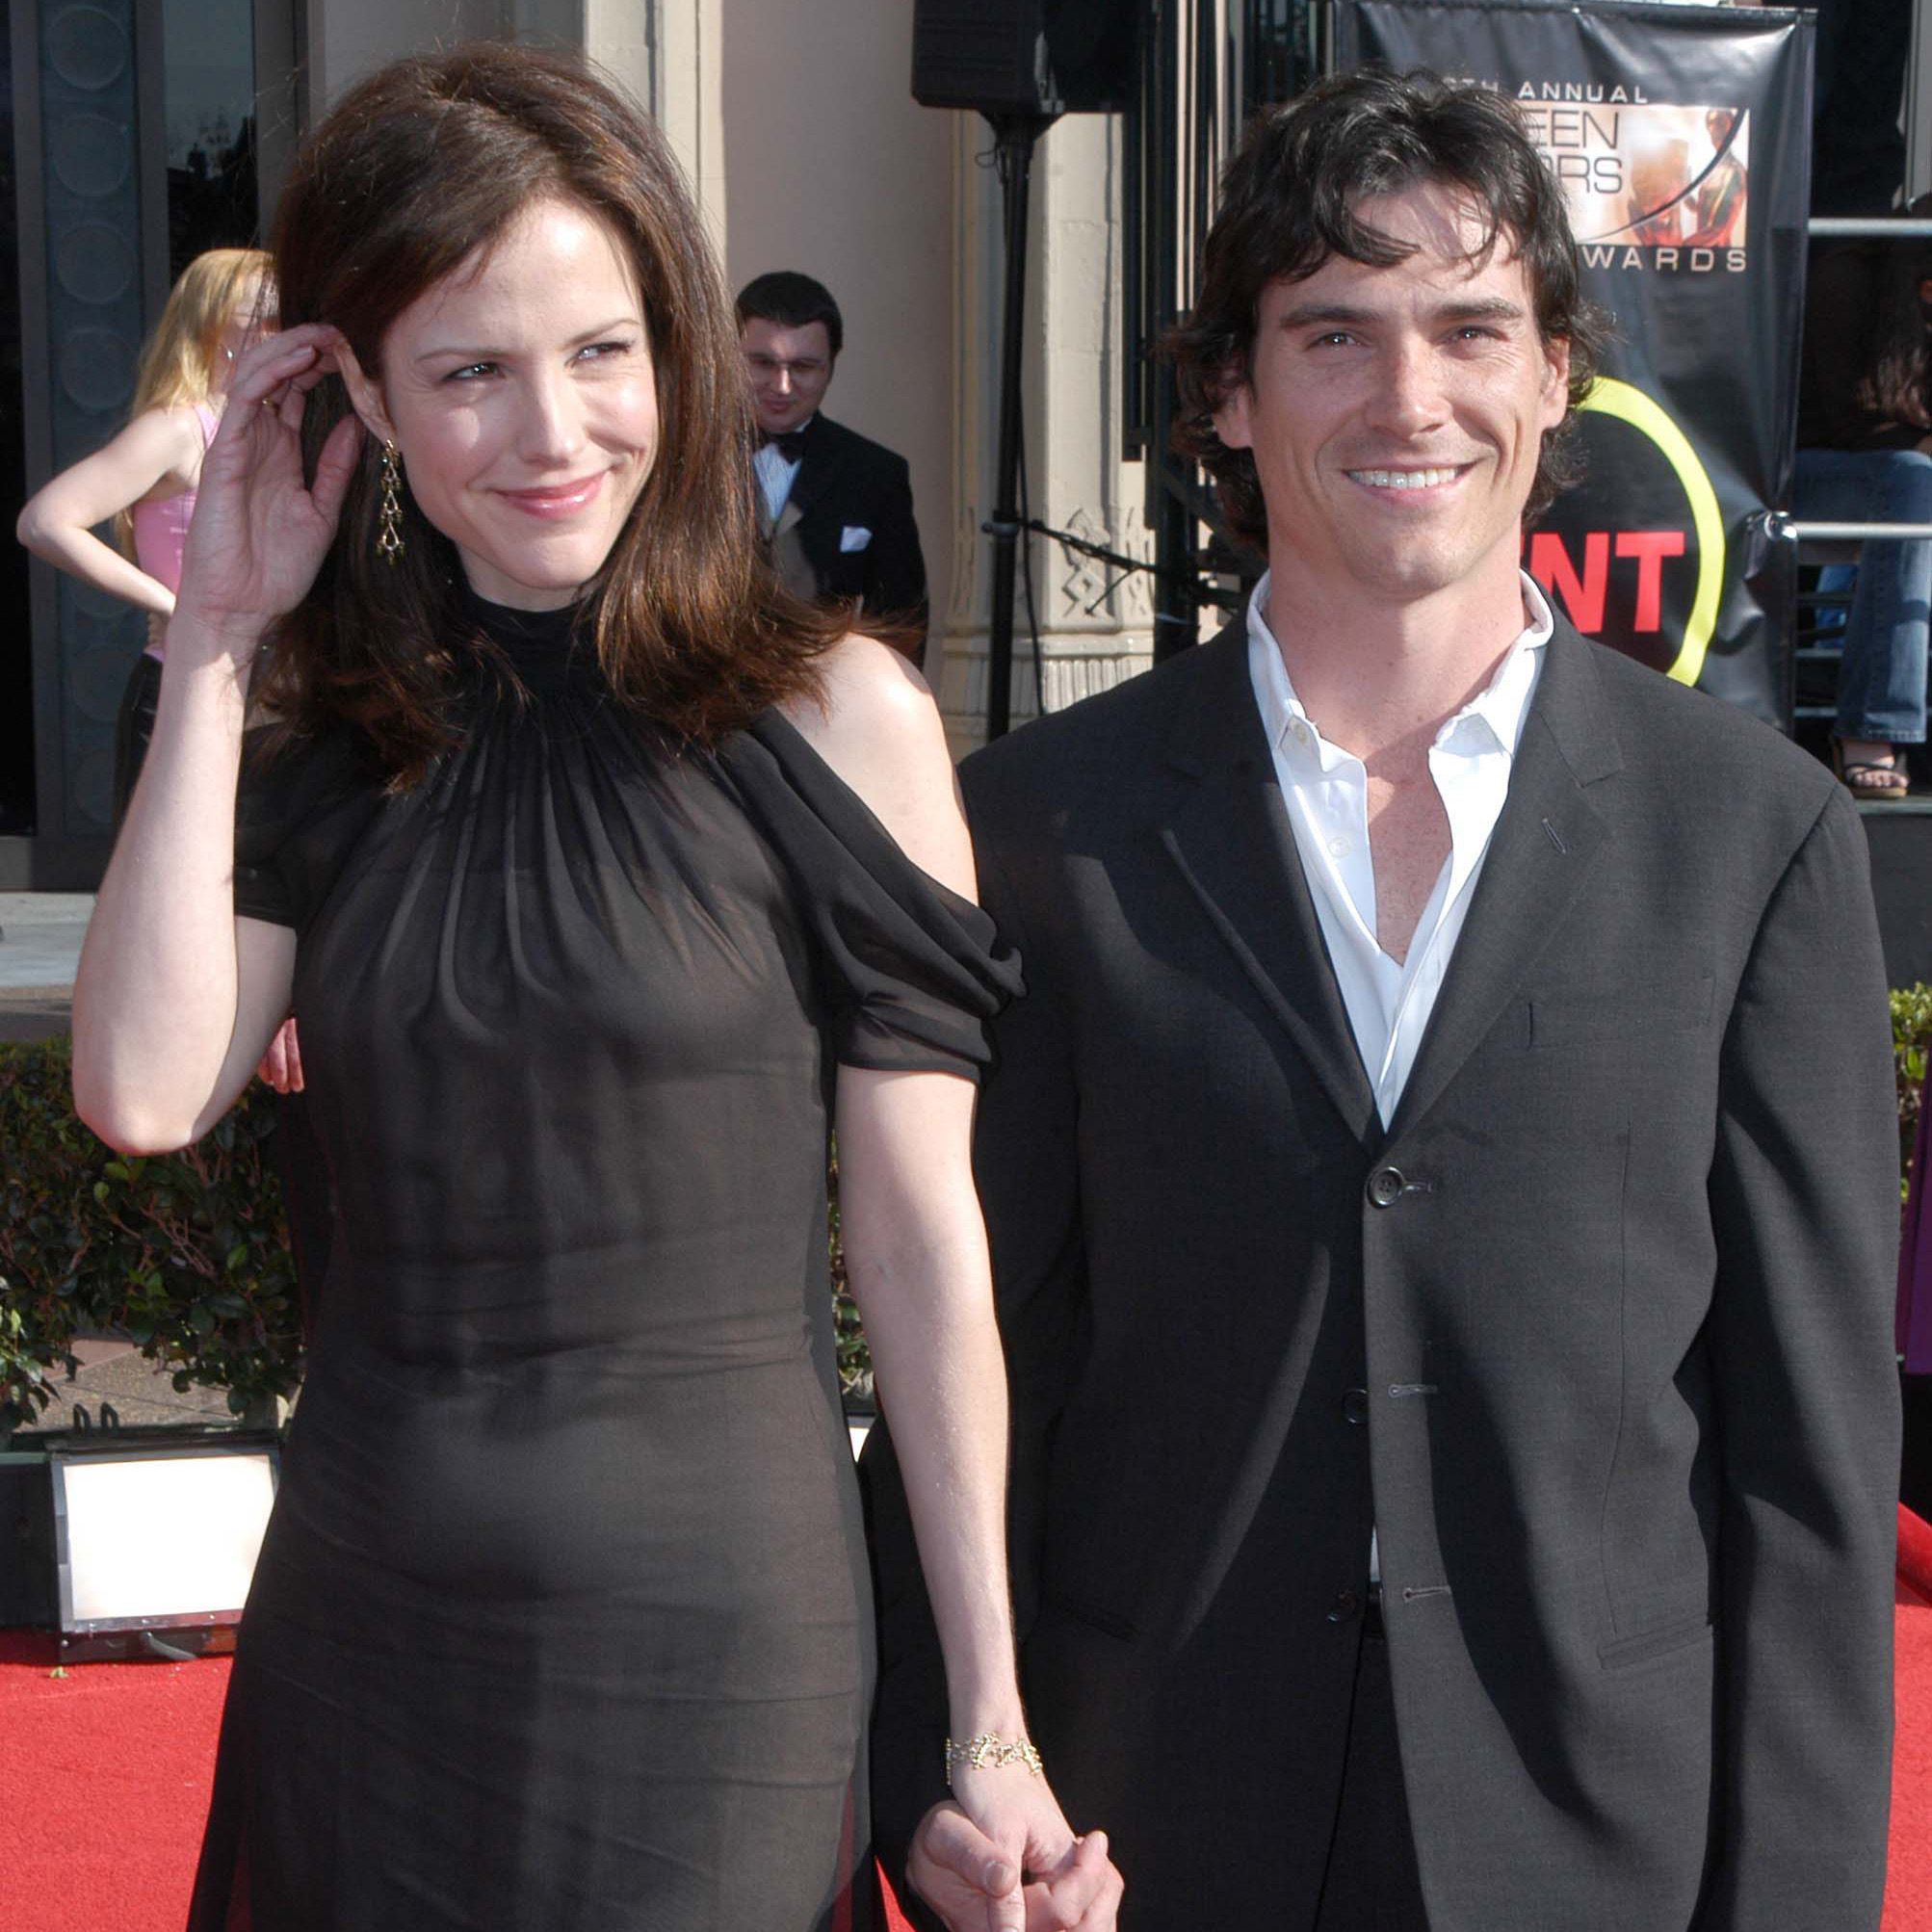 294d0fde72b Billy Crudup left Mary-Louise Parker for Claire Danes when she was seven  months pregnant.